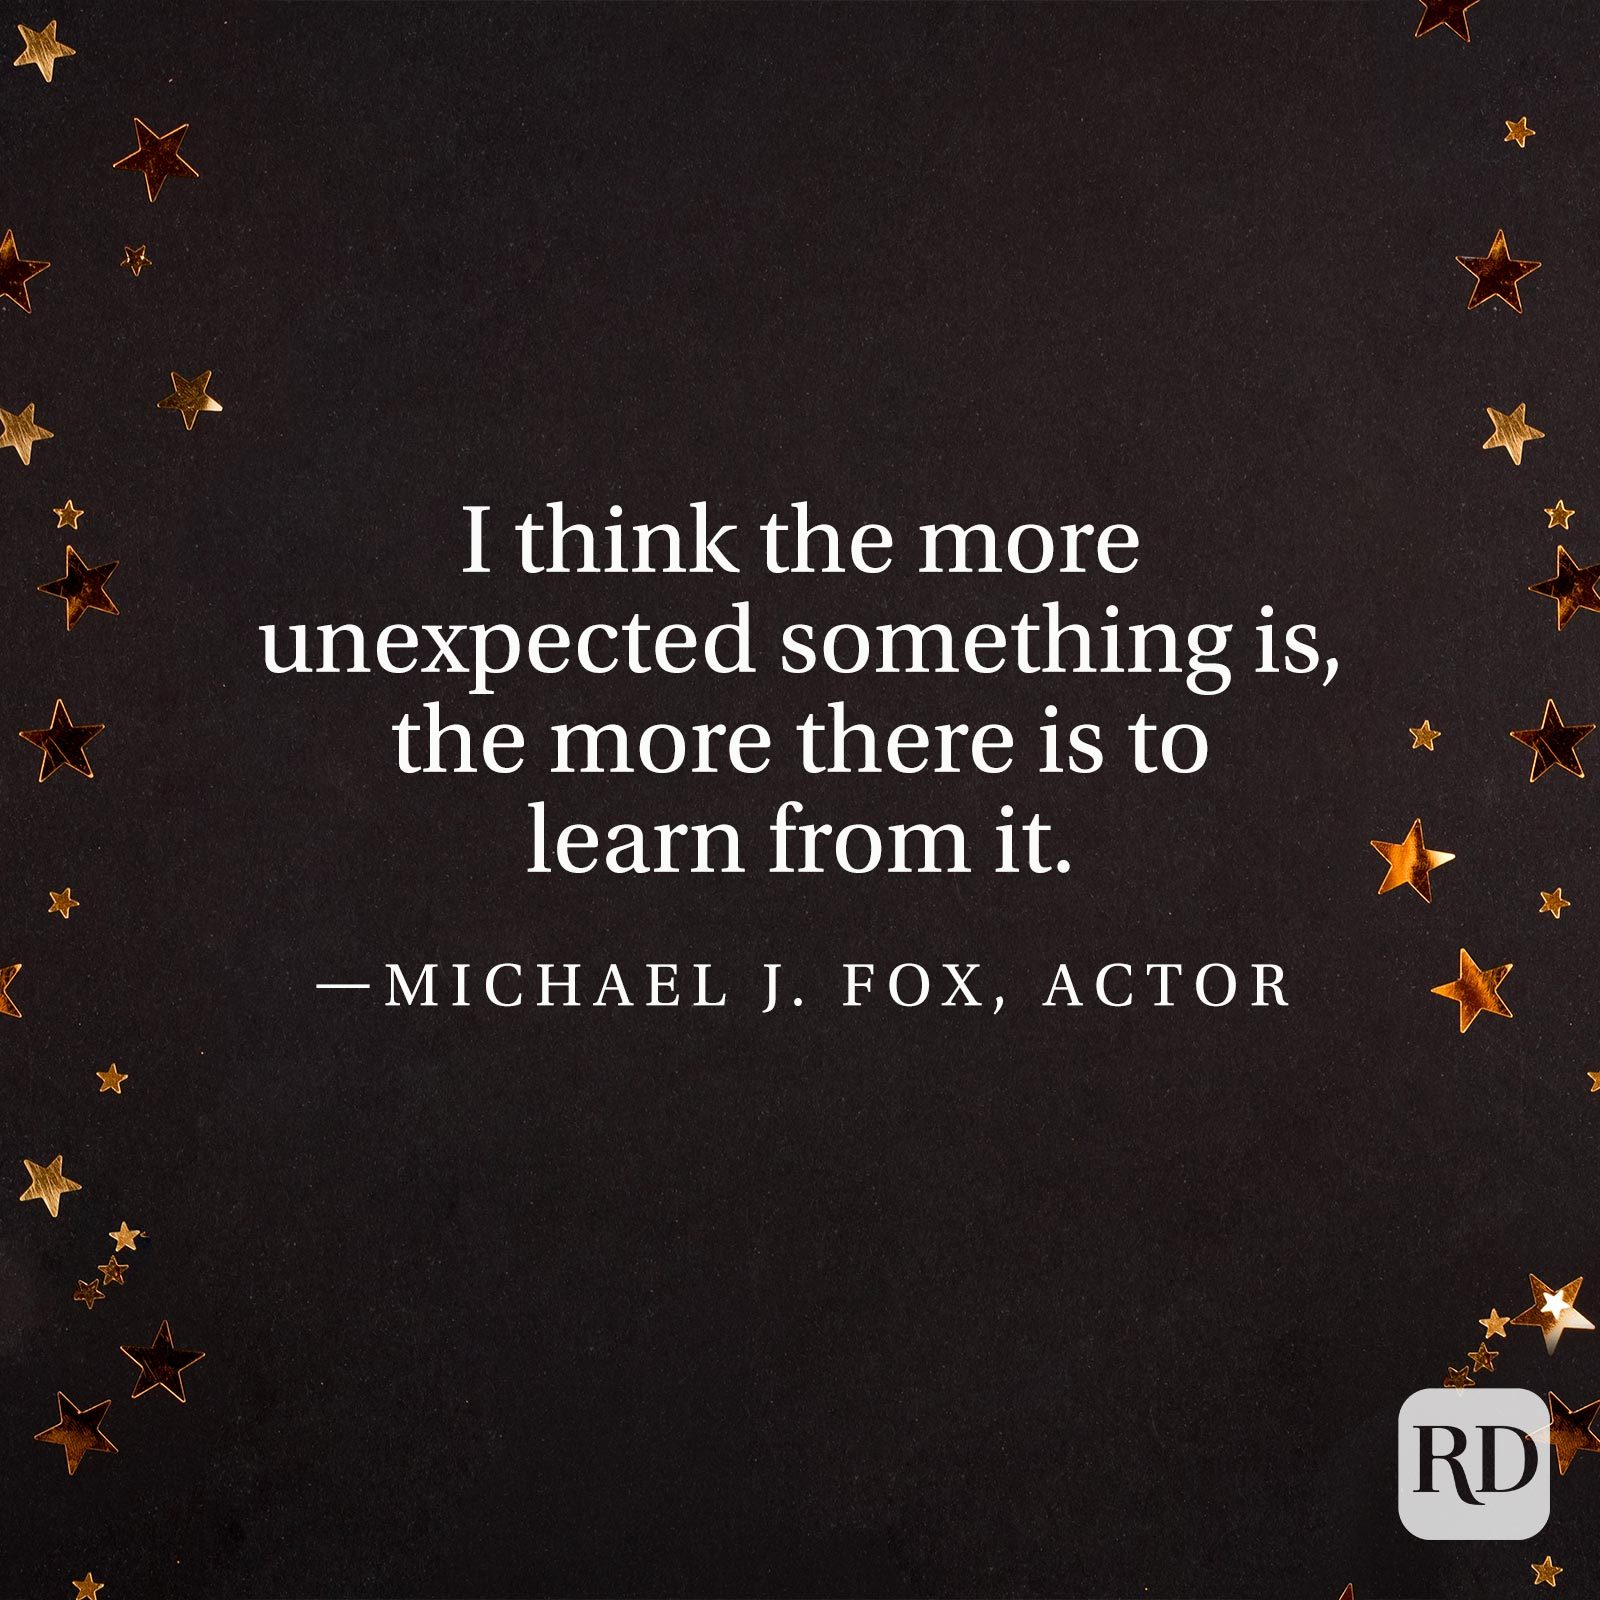 """I think the more unexpected something is, the more there is to learn from it."" —Michael J. Fox, actor"